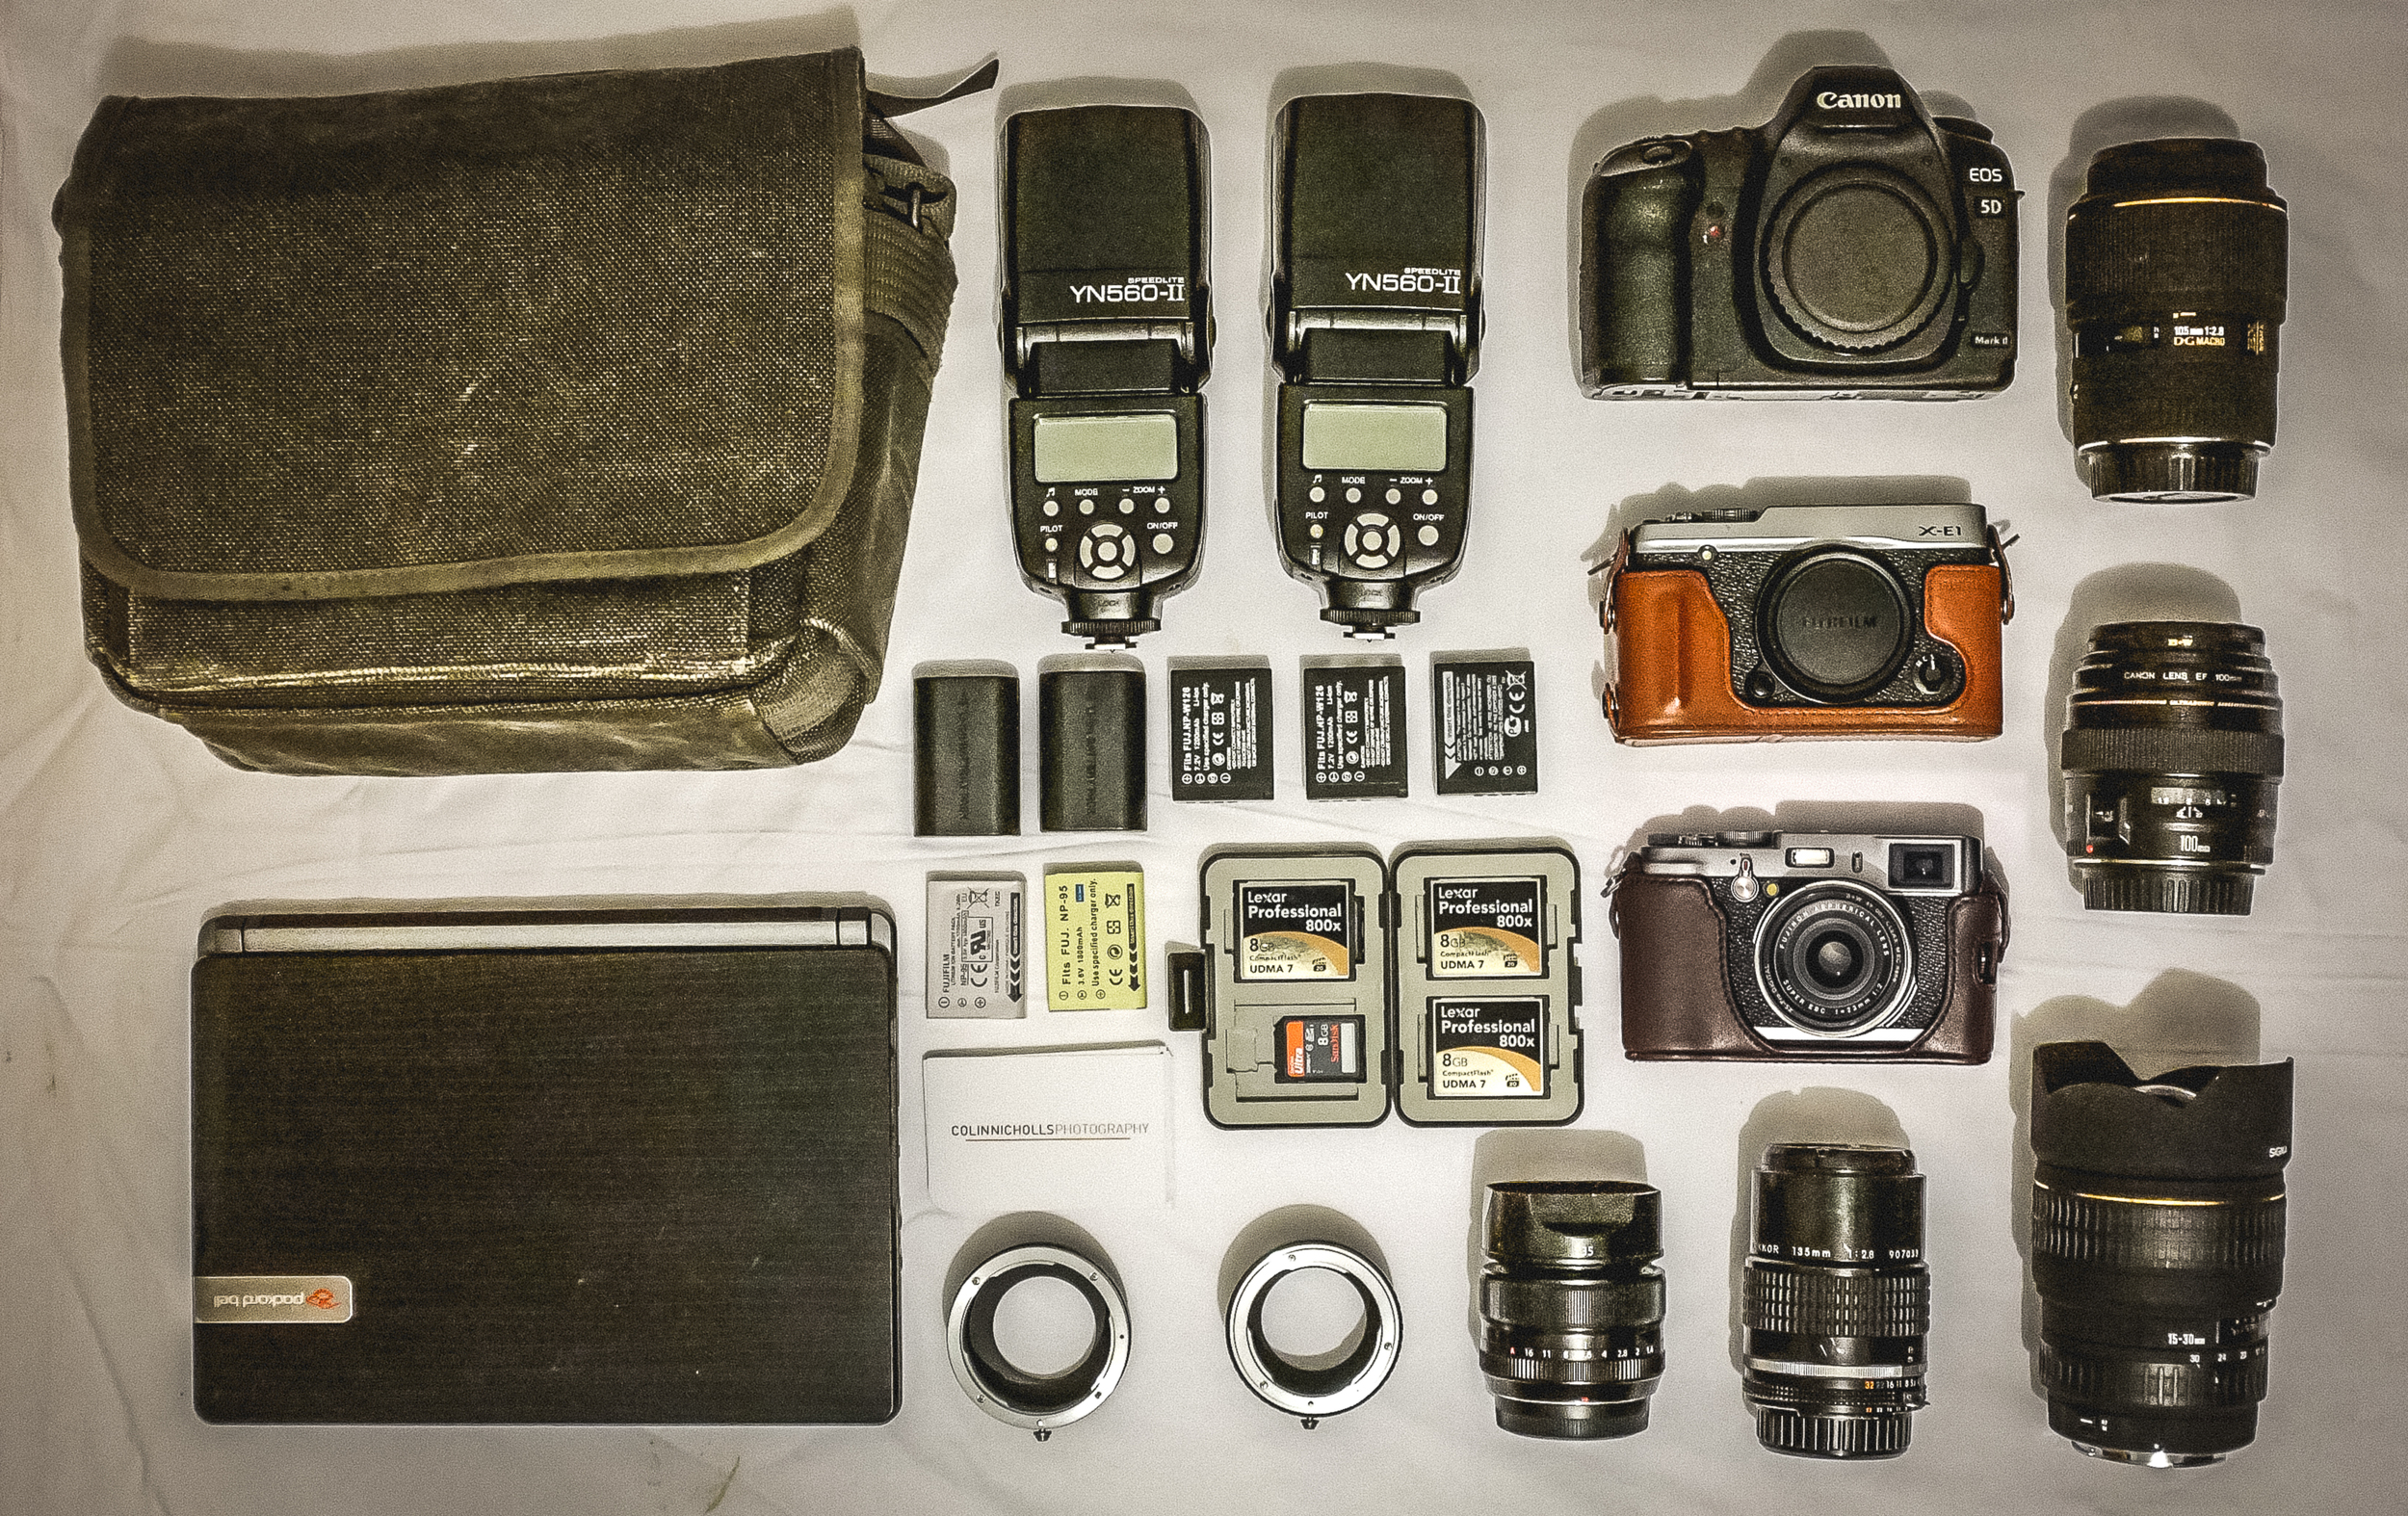 My current camera equipment, minus a few leads, filters, stands and other bits.